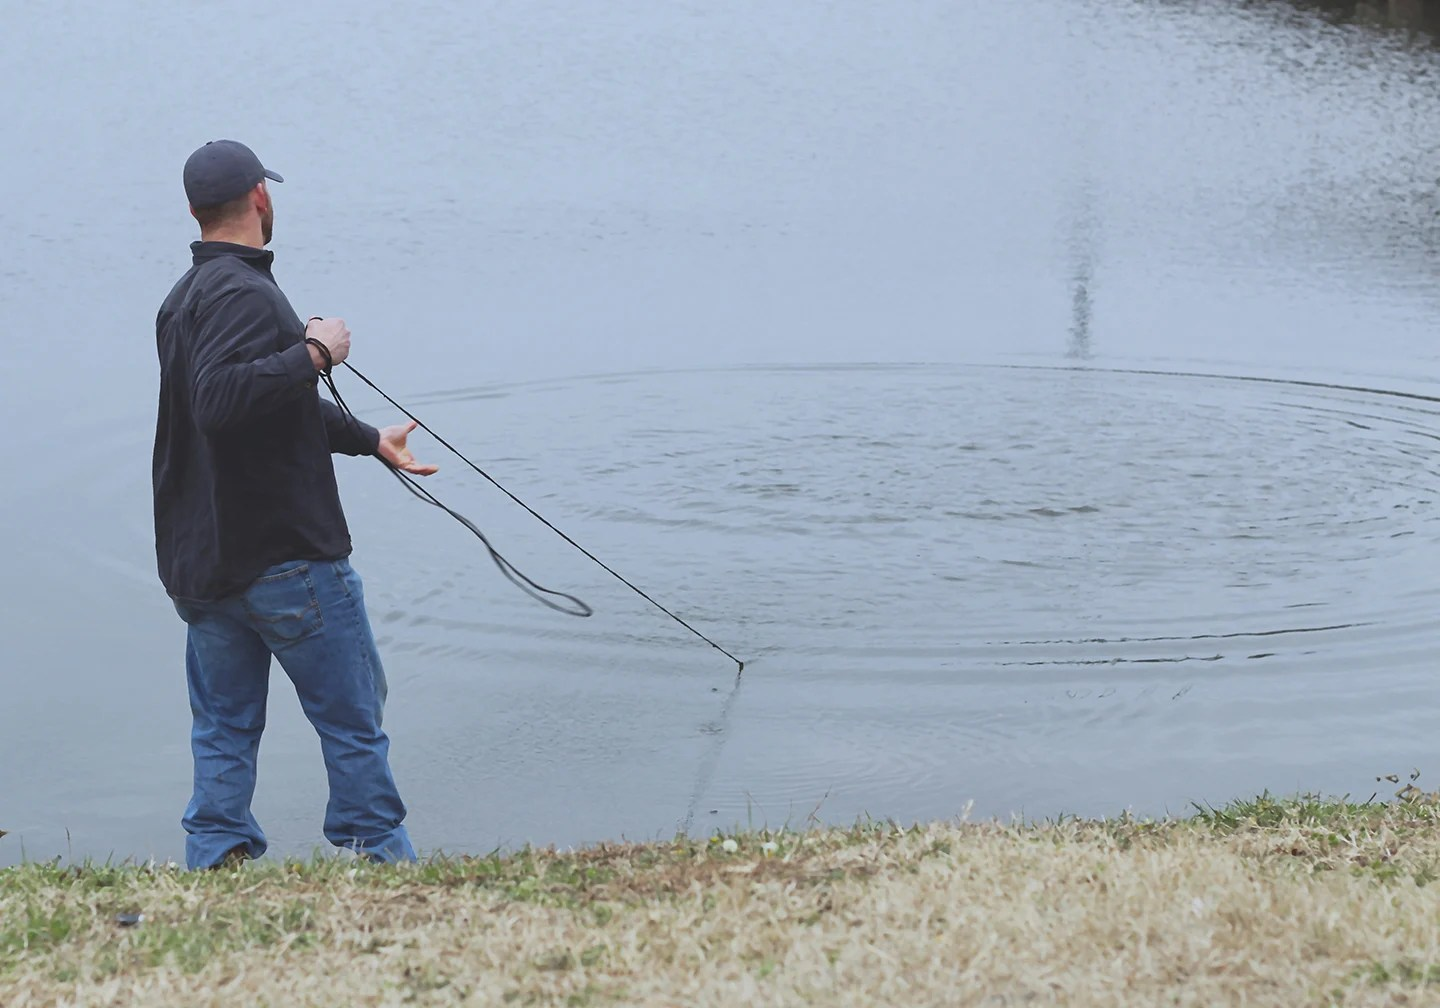 An angler standing by a lake pulling in a bait net on a catfishing trip